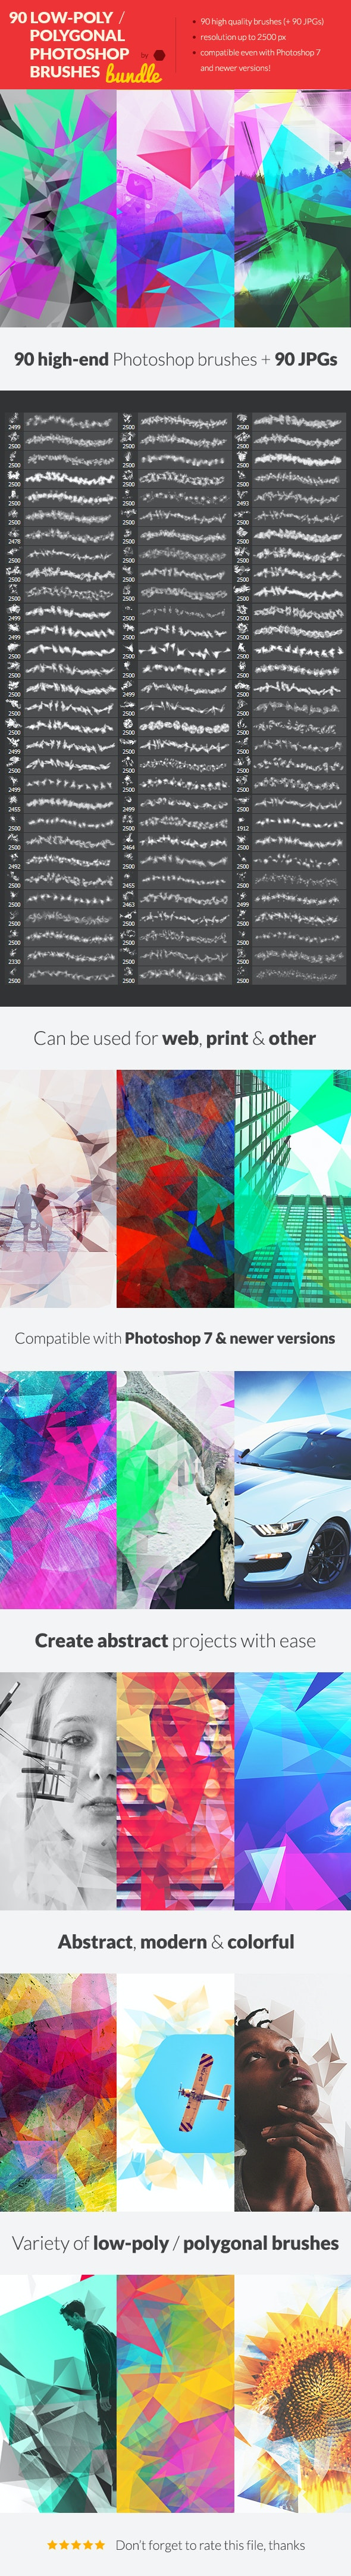 90 Low-Poly / Polygonal Photoshop Brushes Bundle - Brushes Photoshop